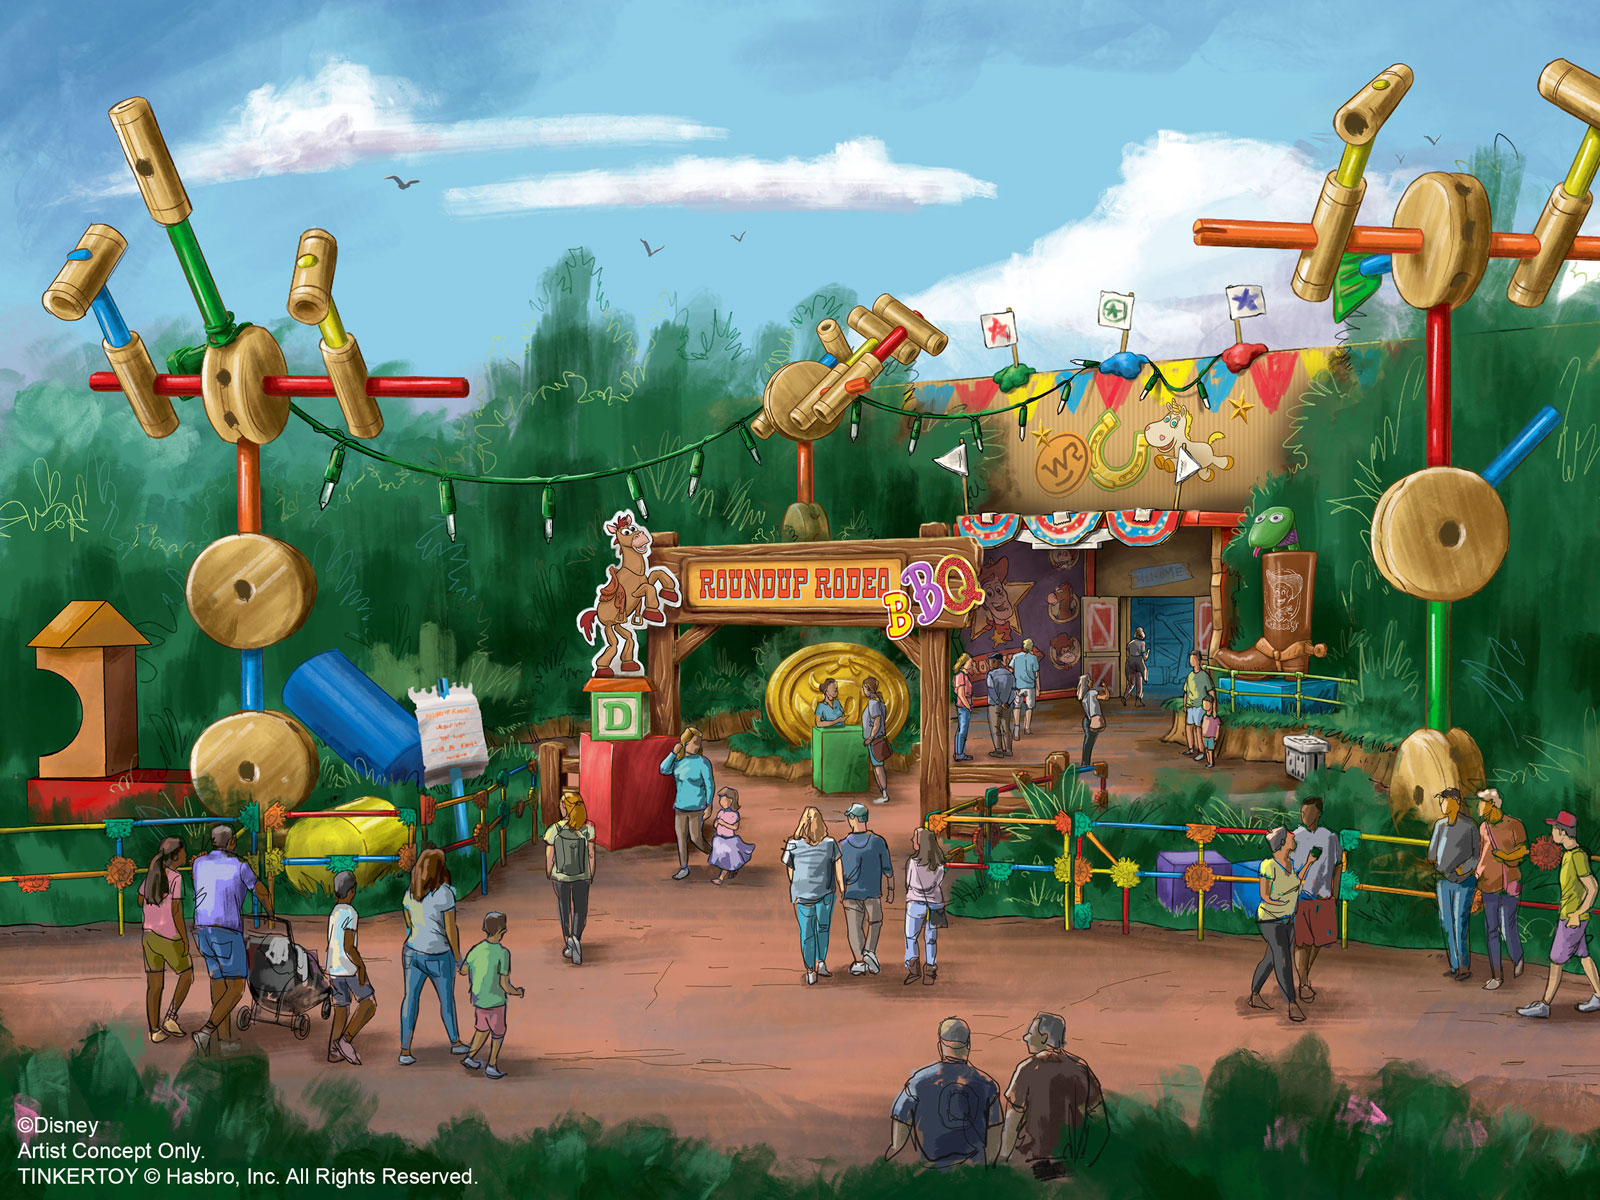 disney-world-toy-story-bbq-FT-BLOG1219.jpg